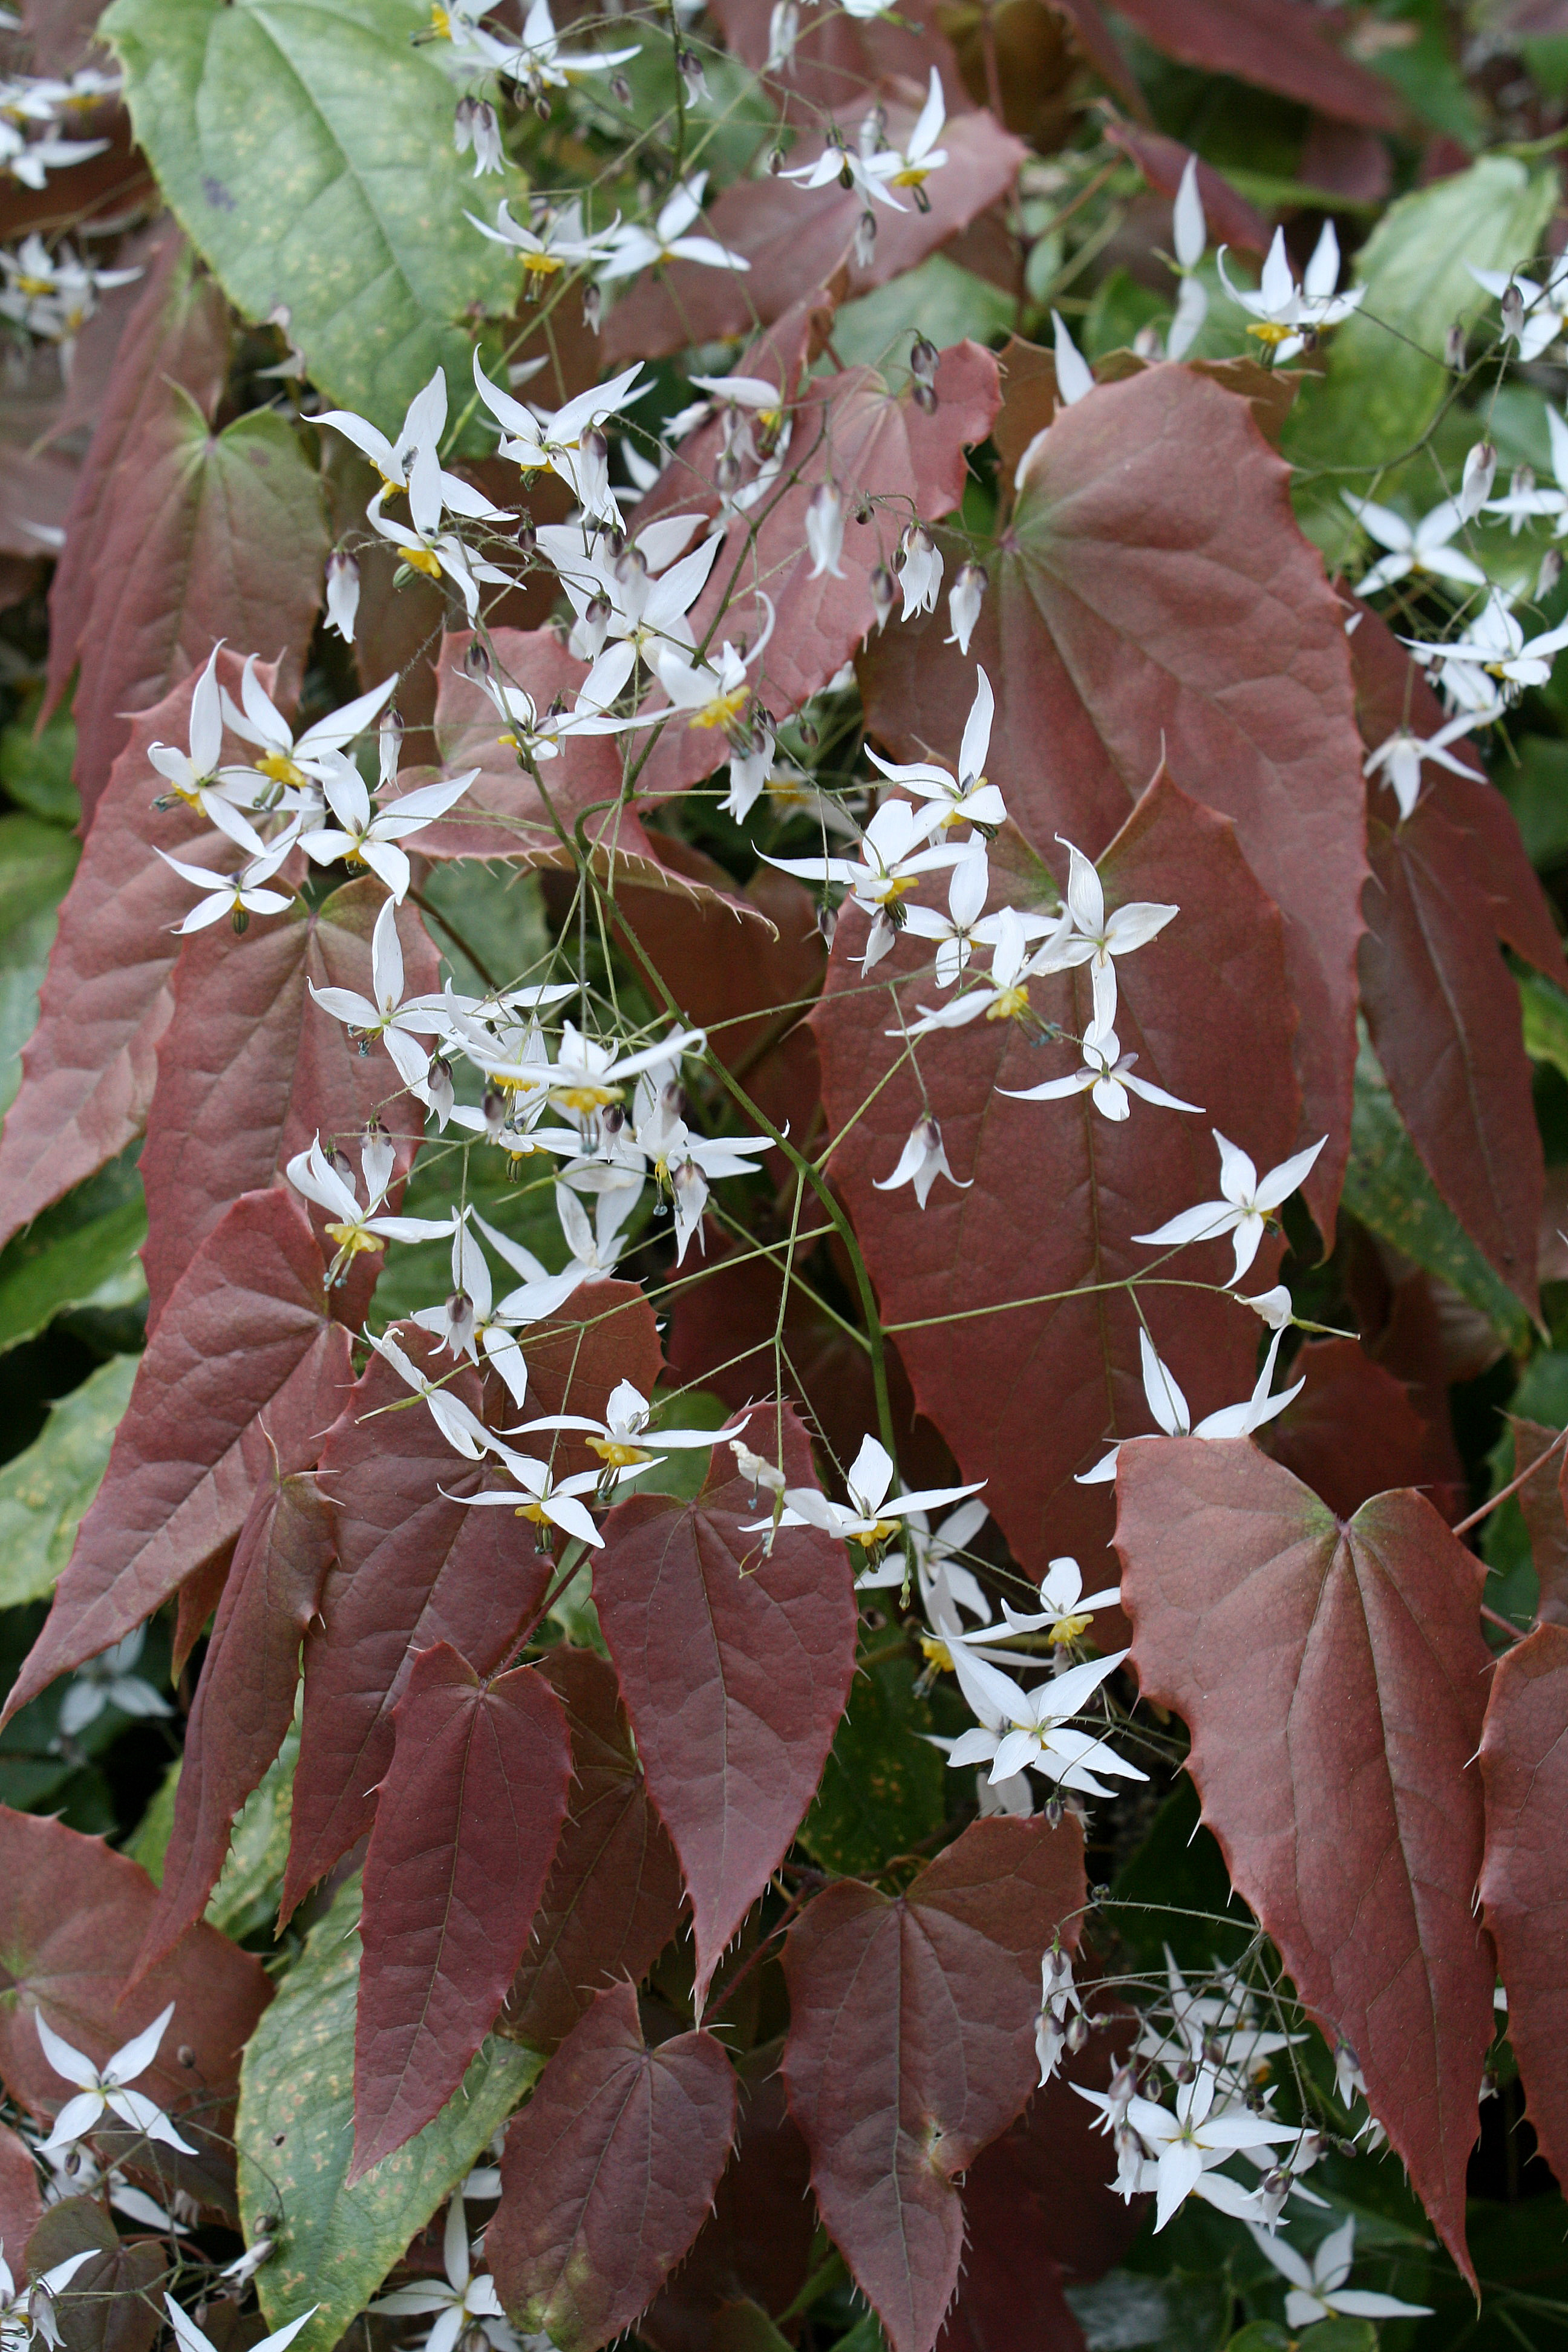 Epimedium pubescens 'Shanxii Snow' @ JLBG - introduced as a seed strain, Epimedium Shanxii forms by Cobblewood - this selected clone was named Epimedium 'Shanxii Snow' by JLBG/PDN